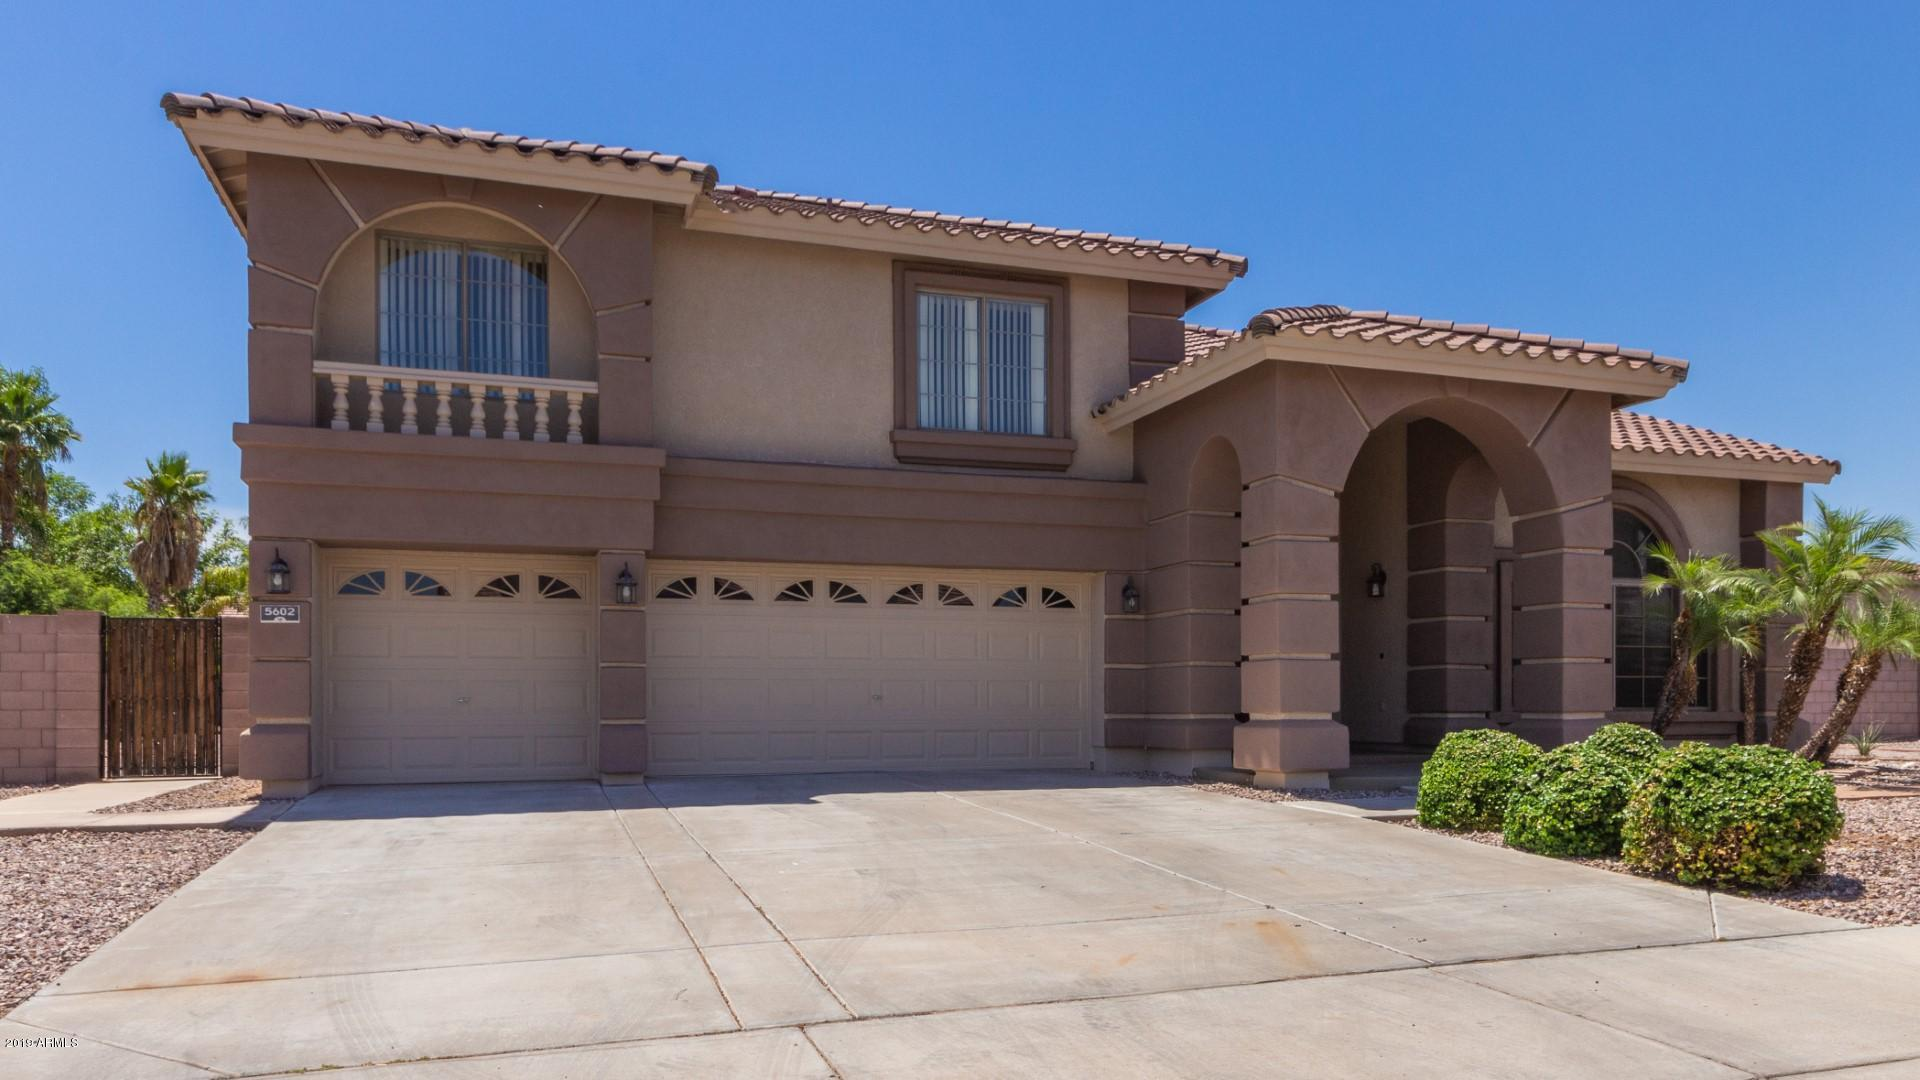 MLS 5938196 5602 N 131ST Drive, Litchfield Park, AZ 85340 Litchfield Park AZ Dreaming Summit